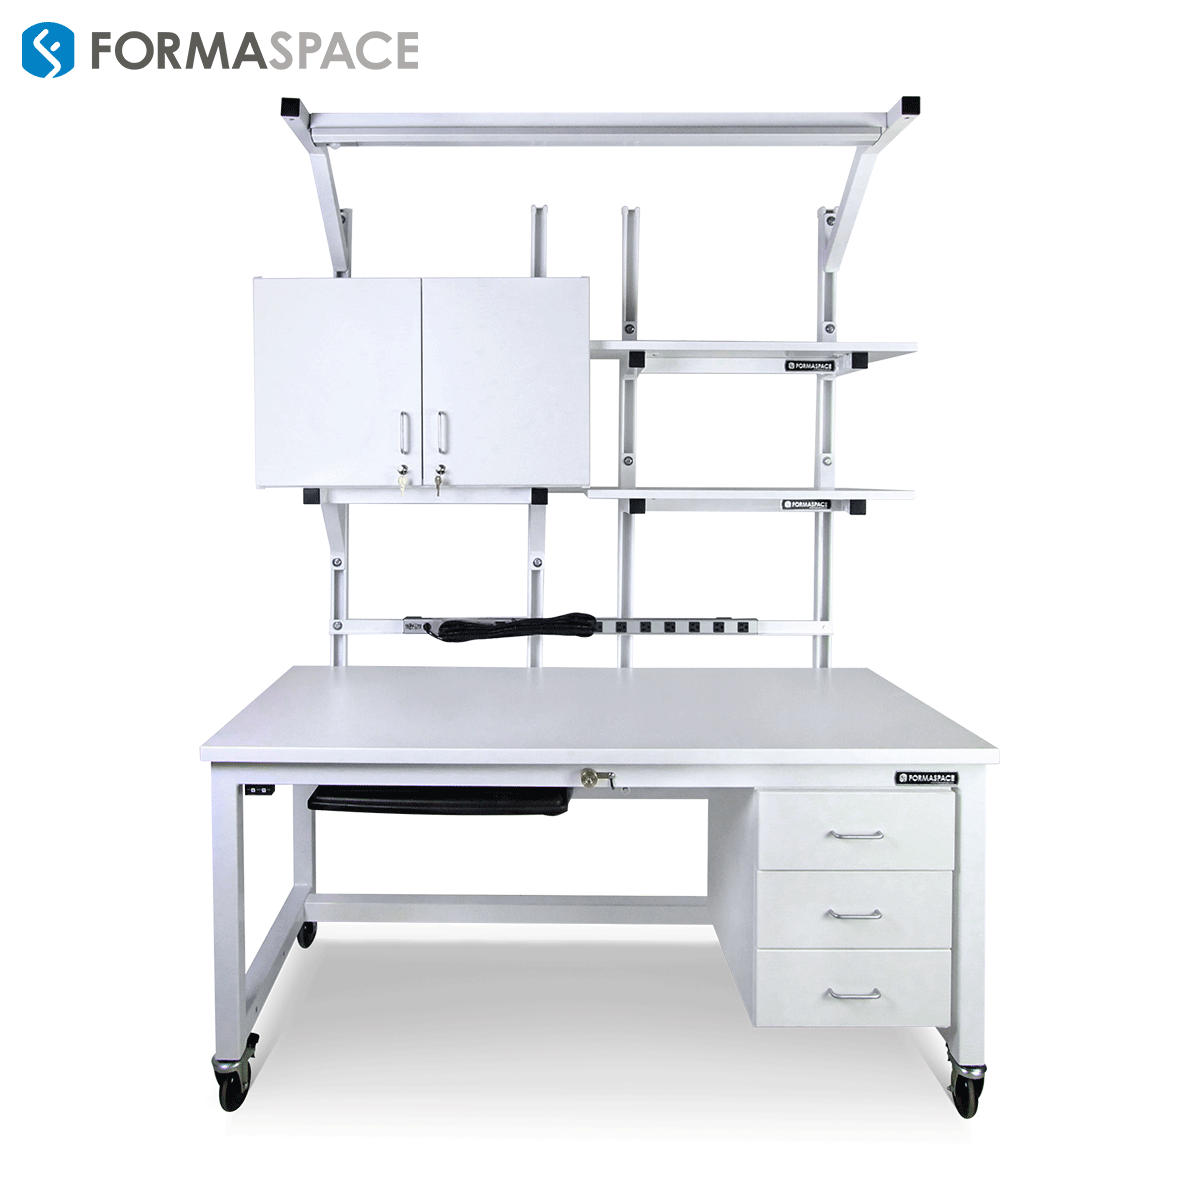 All equipped white workbench with upper and lower cabinets, power strip and two extra shelves on top.